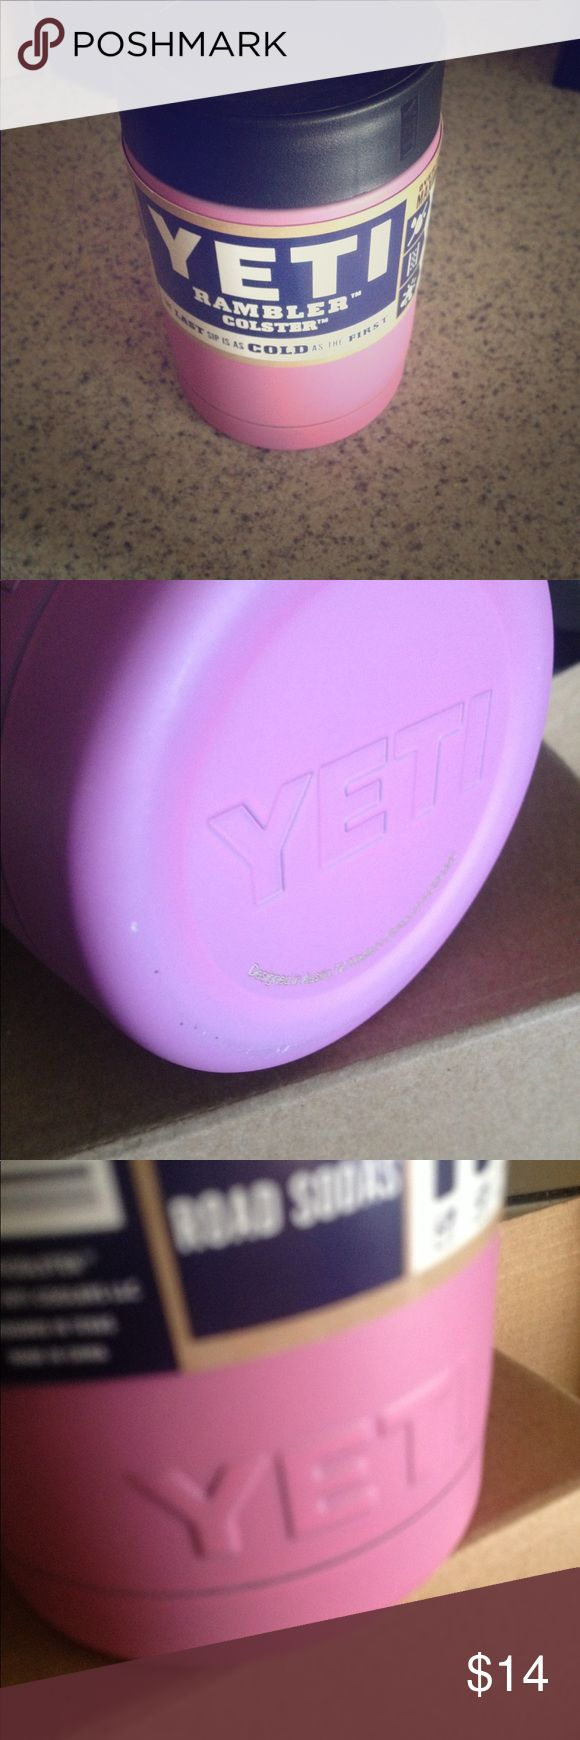 YETI Colster Rambler Cooler 12 oz Insulator Bottle YETI Colster Rambler Cooler 12 oz Insulator Bottle and Can Koozie sale sale yeti Other